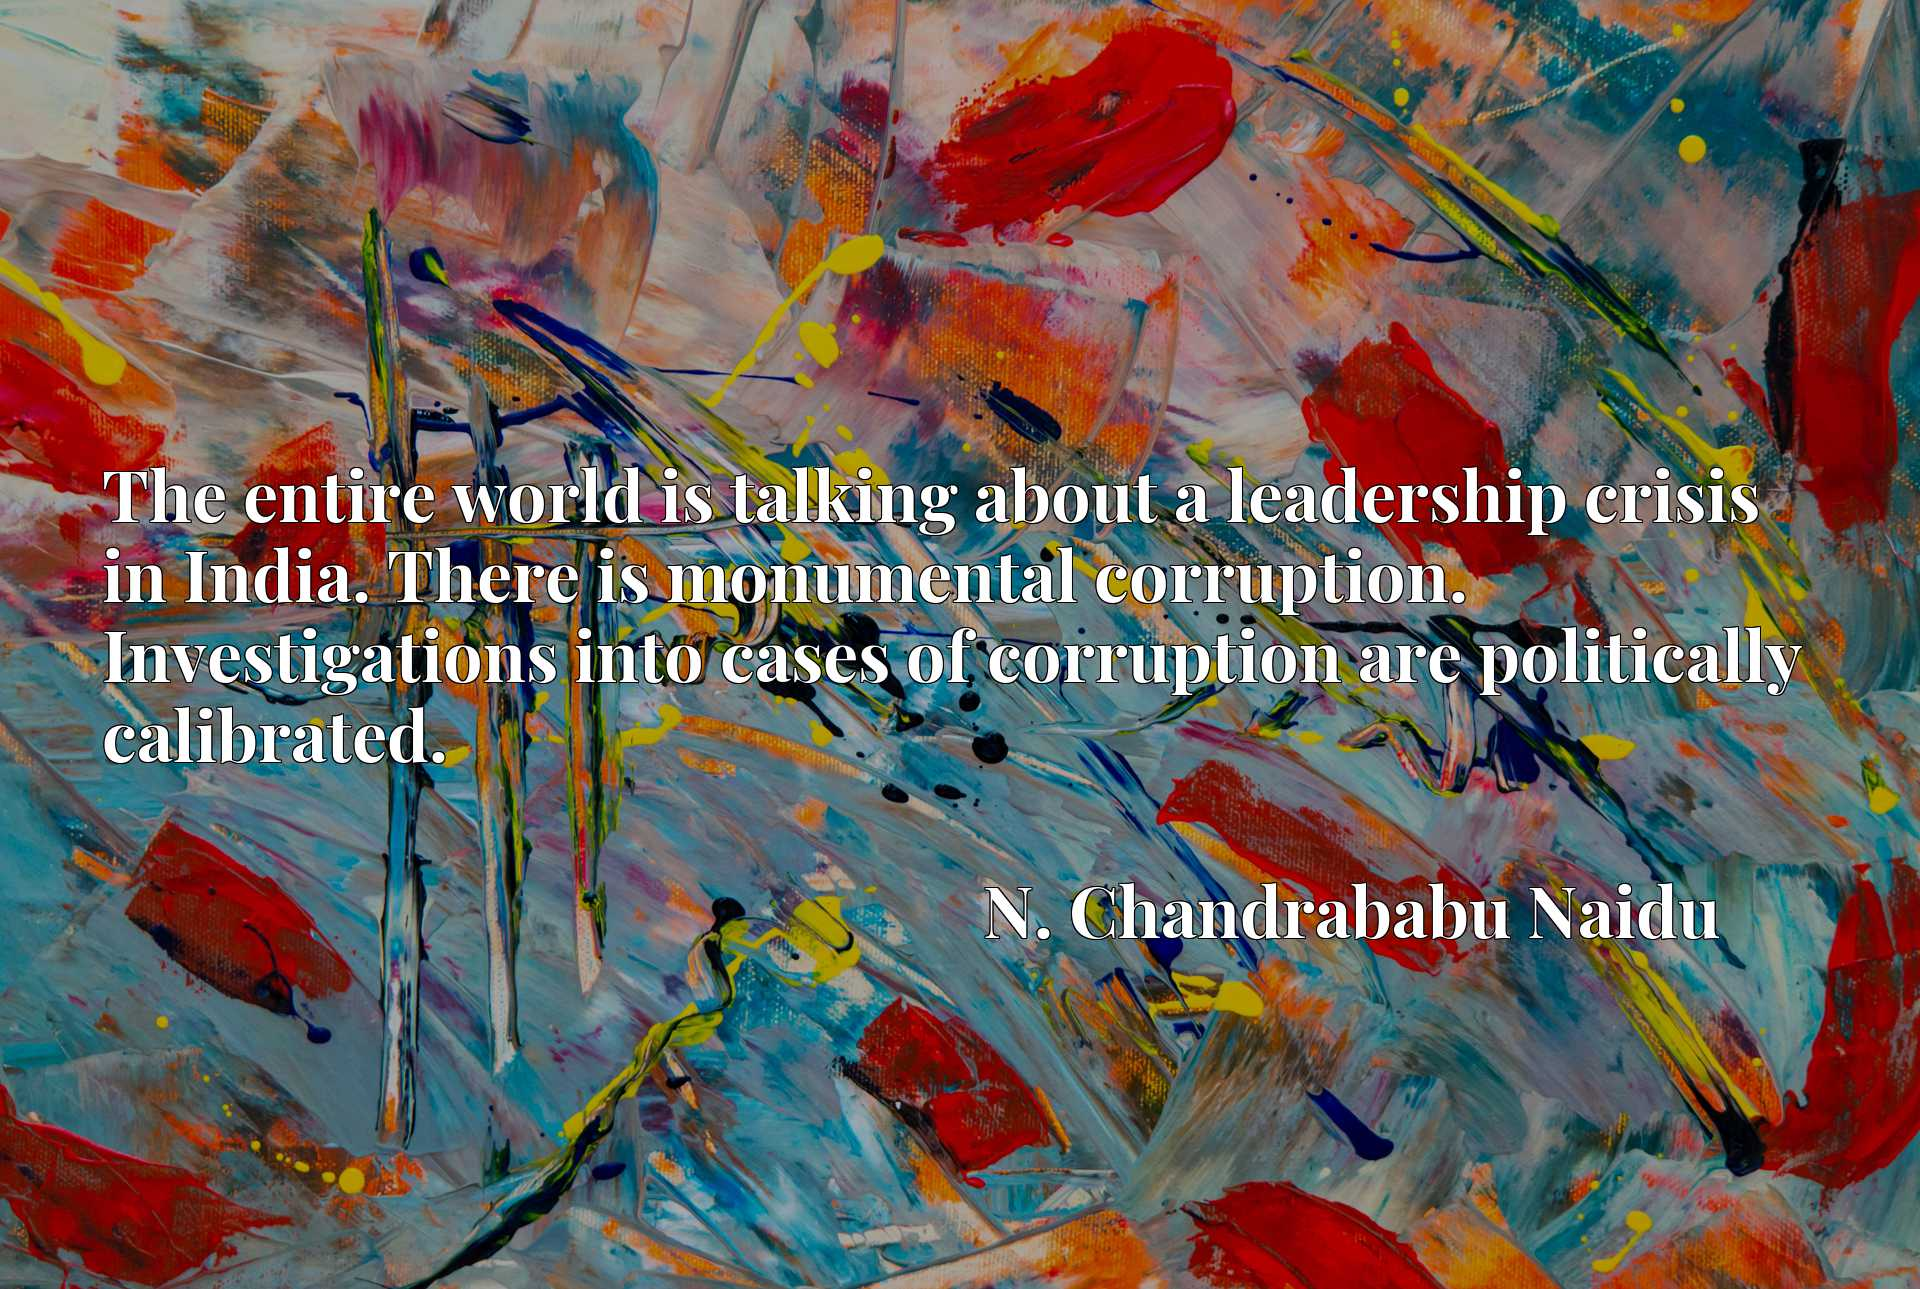 Quote Picture :The entire world is talking about a leadership crisis in India. There is monumental corruption. Investigations into cases of corruption are politically calibrated.